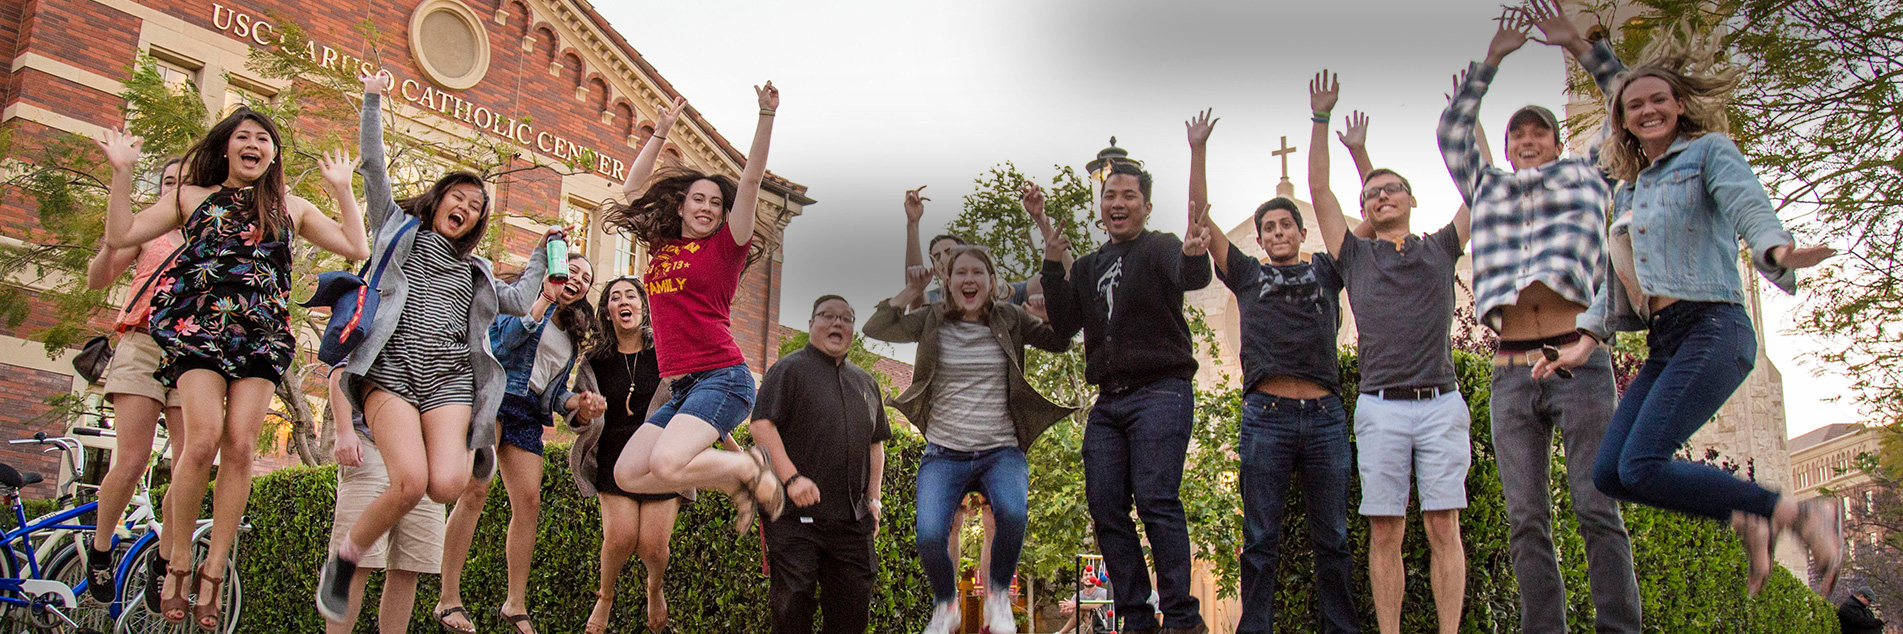 Students jump and pose in front of buildings